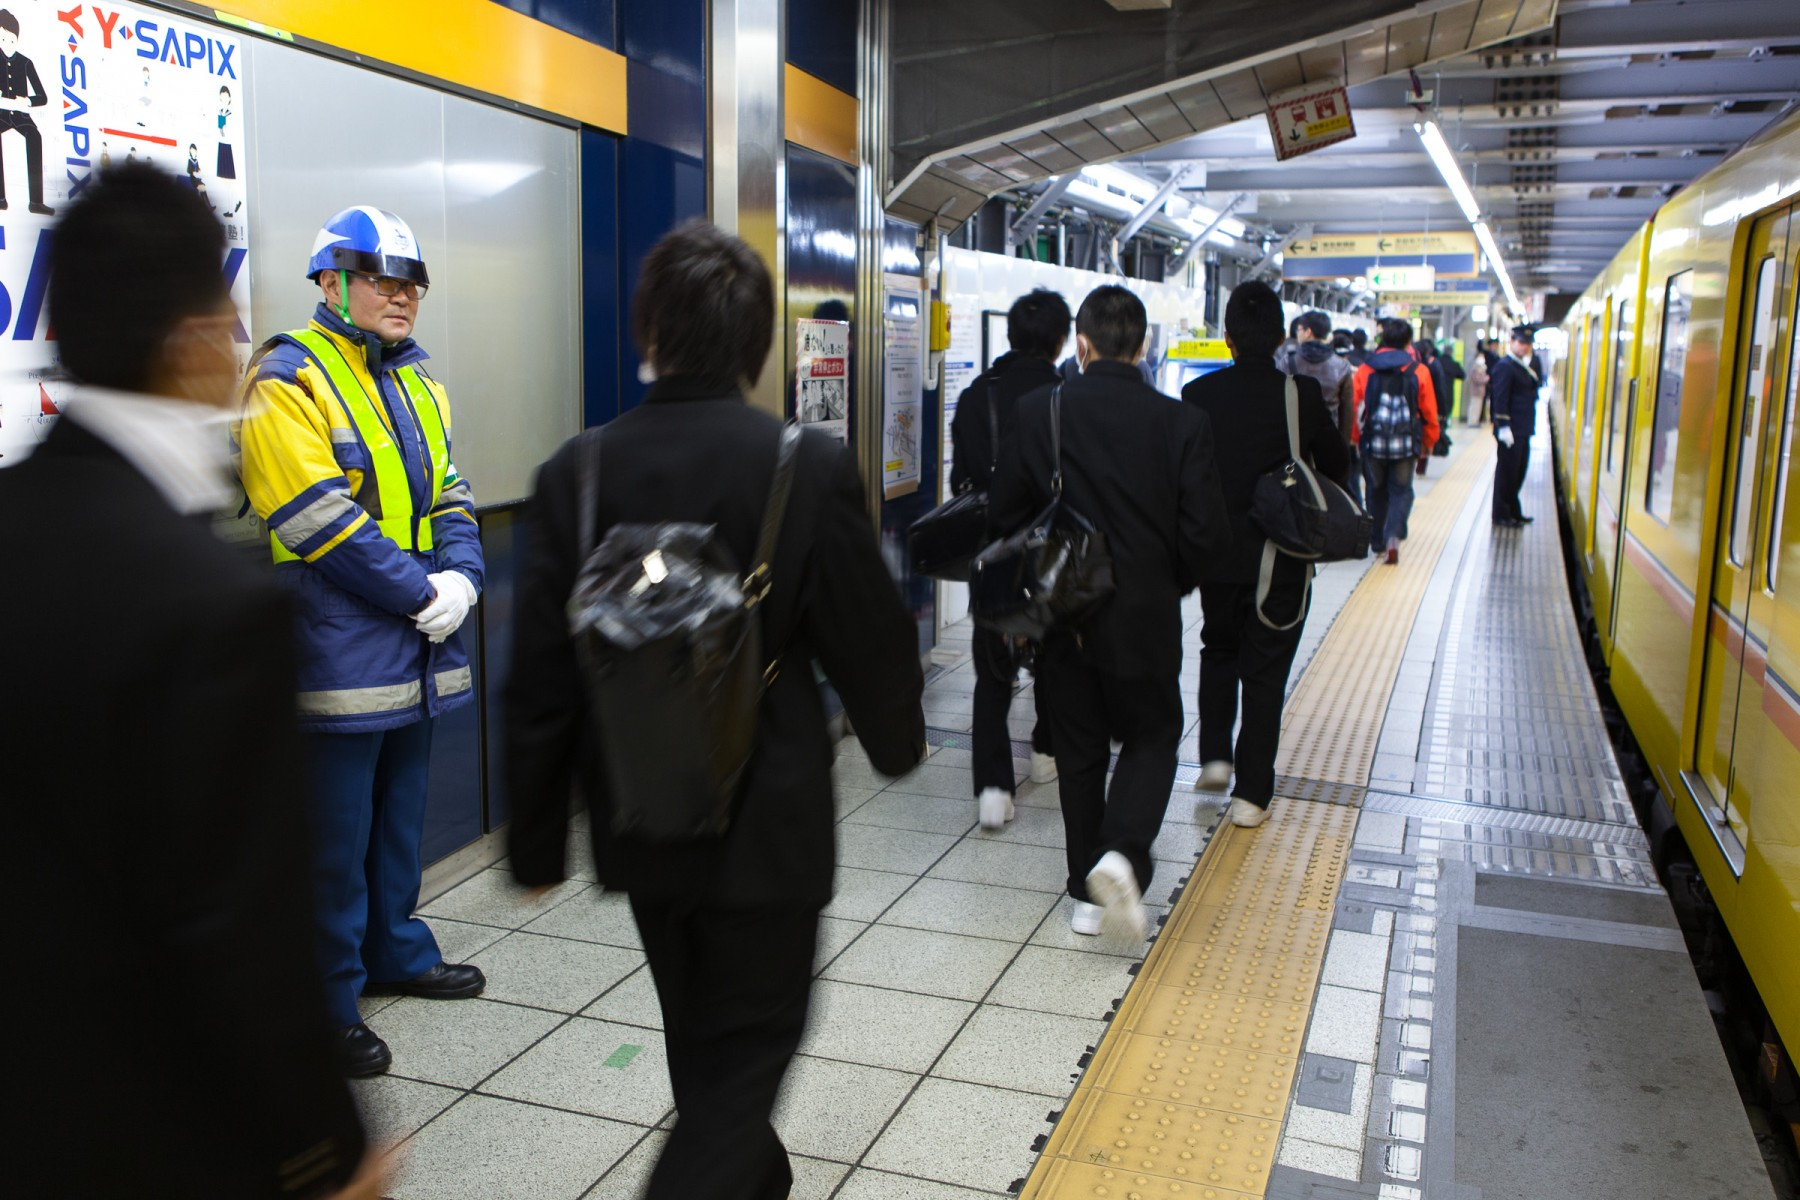 Security guard keeping an eye on the platform in the Kyoto subway system.